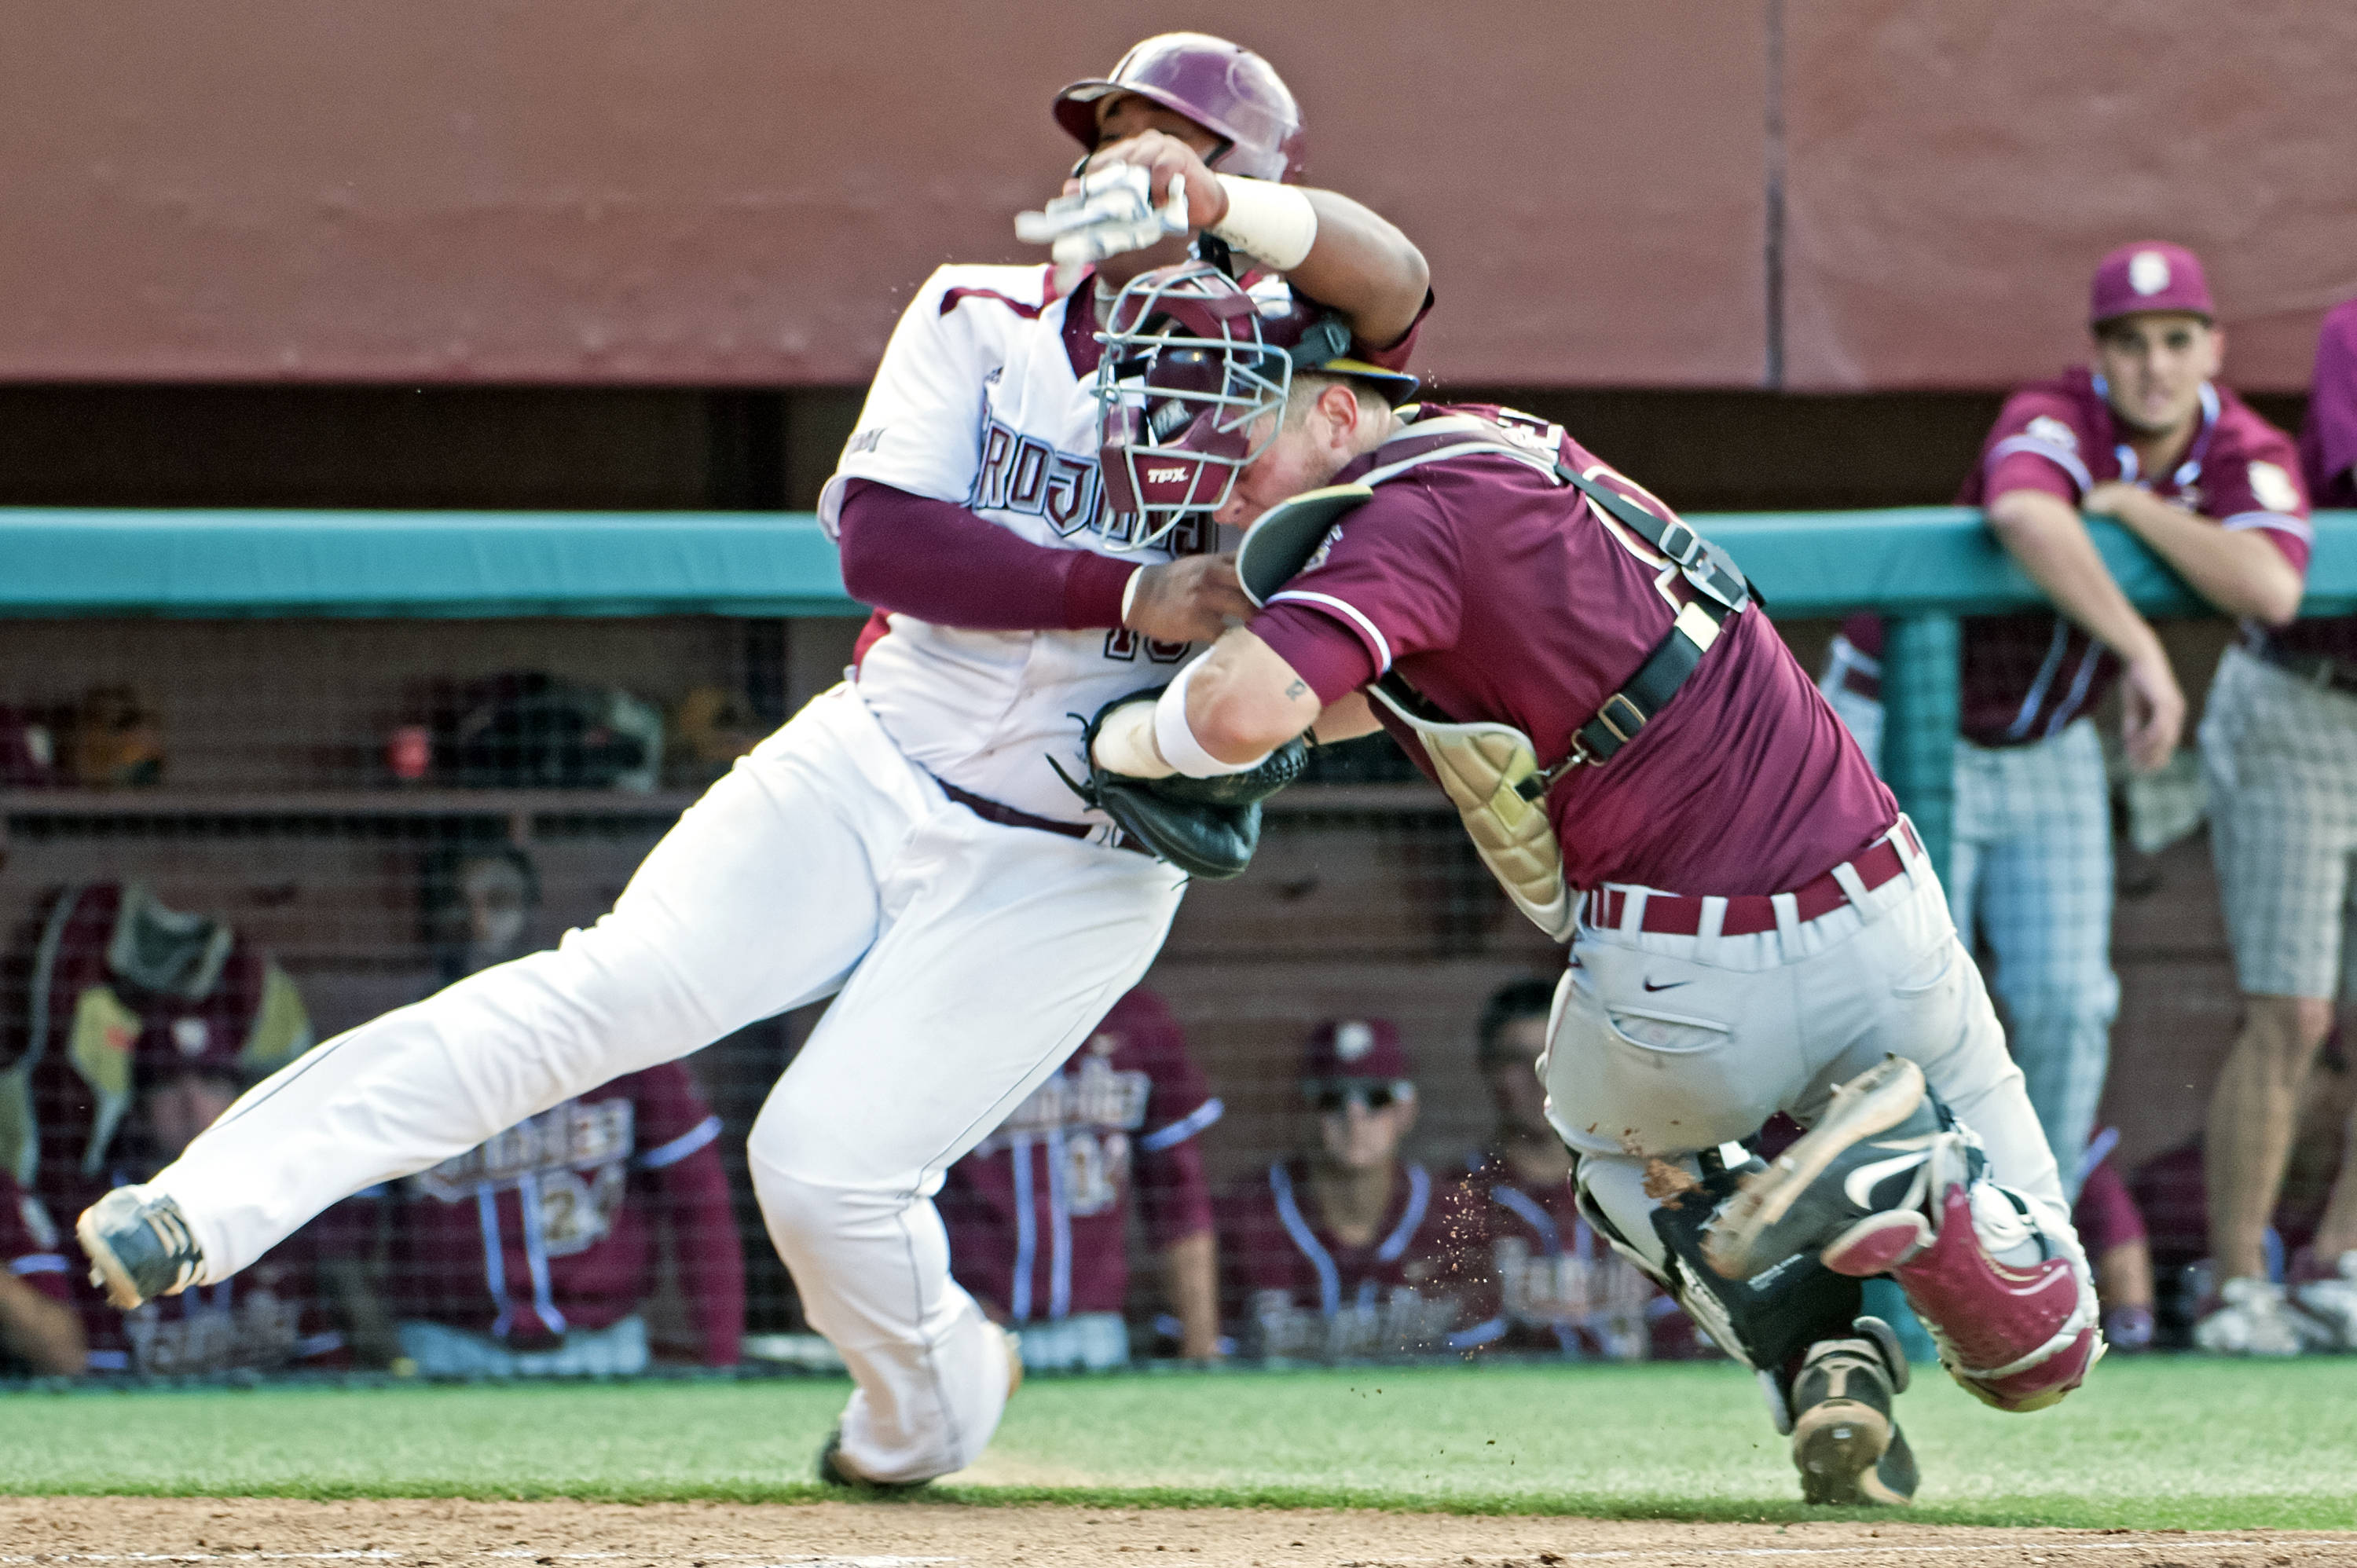 Stephen McGee (9) prevents Troy from scoring first by tagging Troy's Trae Santos at home despite a collision at the plate